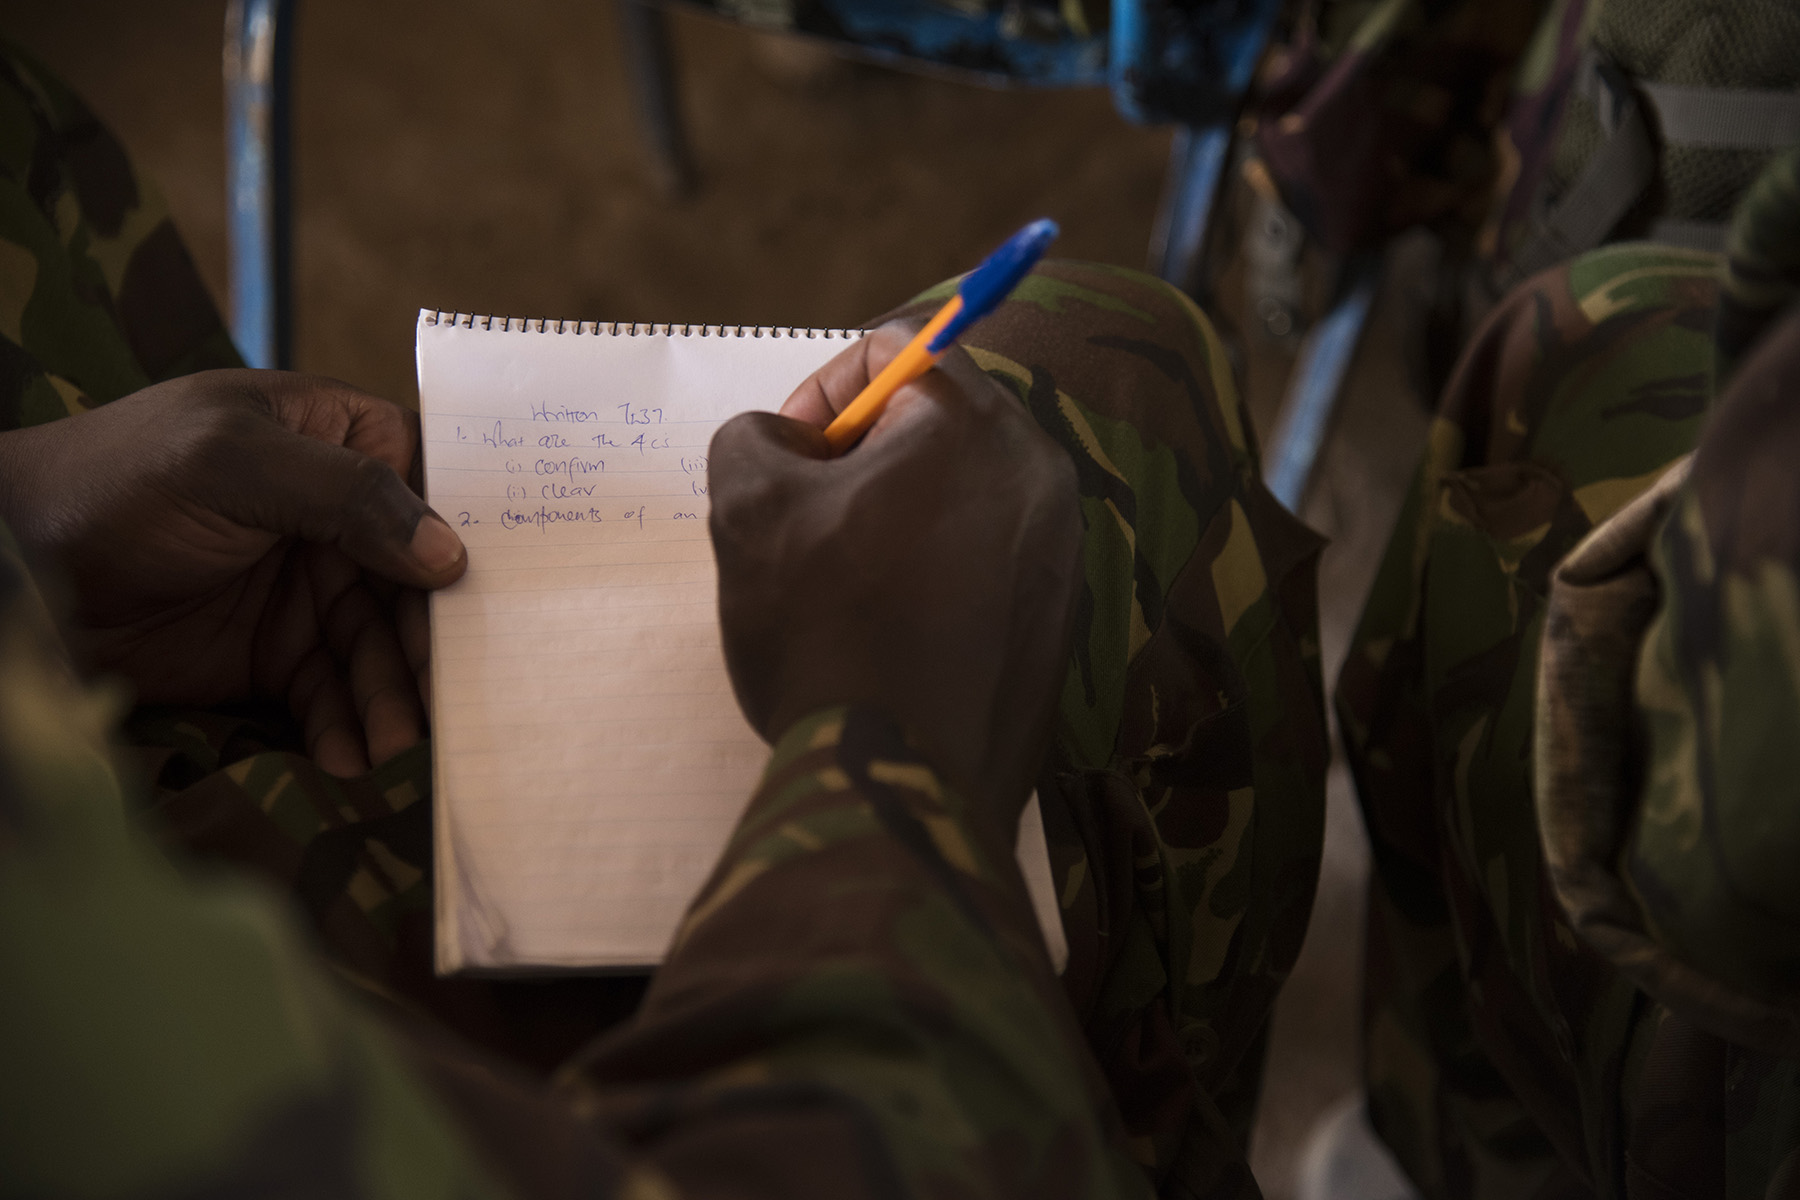 KENYA- Kenya Defense Forces combat engineer soldiers and officers complete a written test at the end of their second week of class during Deliberate Kindle 2016, Sept. 16, at a training center in Kenya. U.S. Navy Task Force Sparta explosive ordnance disposal technicians and a dive independent duty corpsman, assigned to Combined Joint Task Force-Horn of Africa, provided counter-improvised explosive device, tactical combat medical care, and train-the-trainer skills to approximately 53 KDF soldiers and officers in preparation the KDF's deployment with the African Union Mission in Somalia. (U.S. Air Force photo by Staff Sgt. Tiffany DeNault)